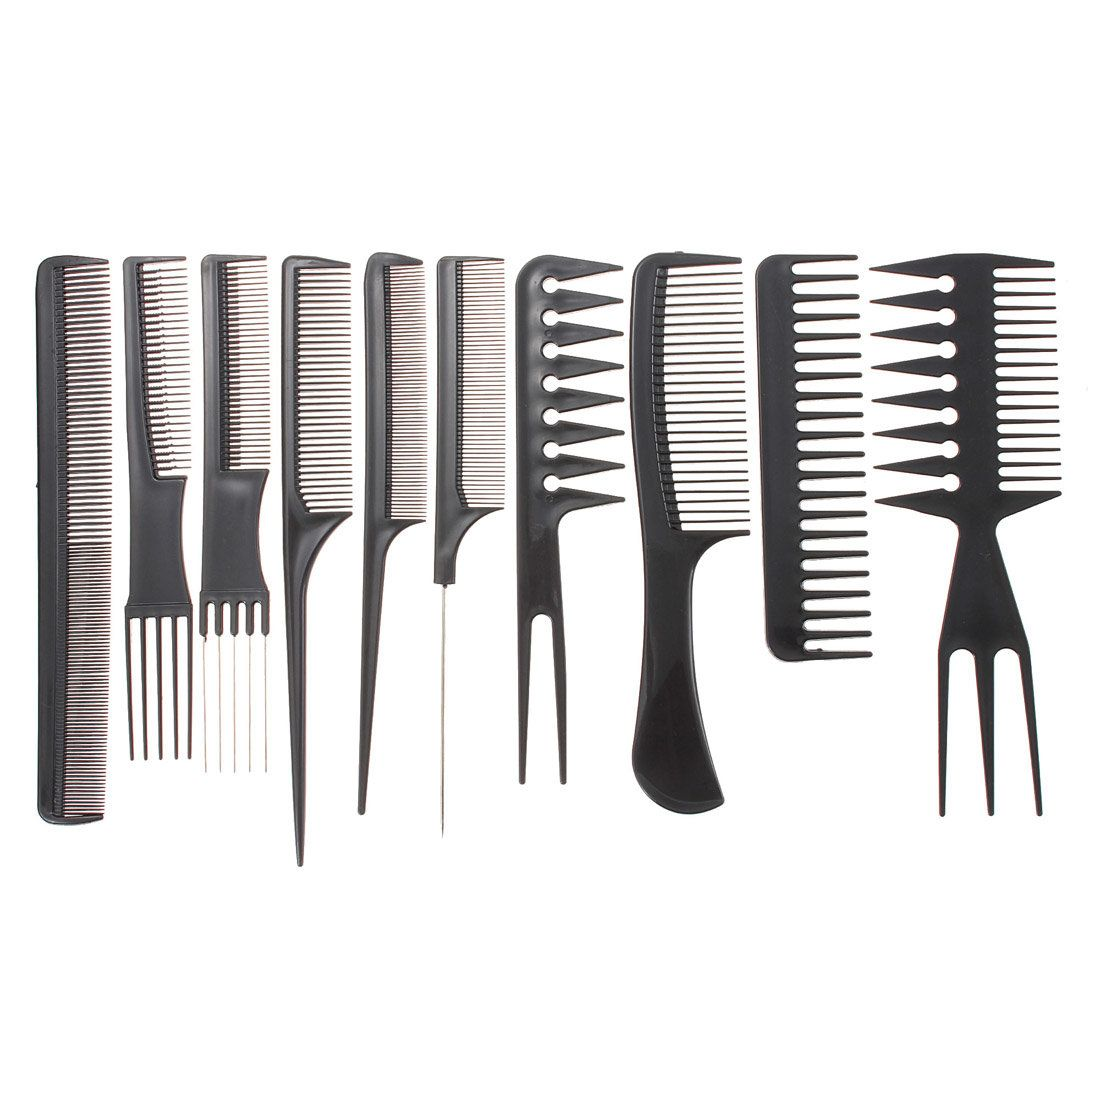 Us 4 80 Professional Salon Hair Styling Hairdressing Plastic Combs Hair Styling Tools Salon From Health Beauty Hair Tools Hair Care Professional Hairstyles